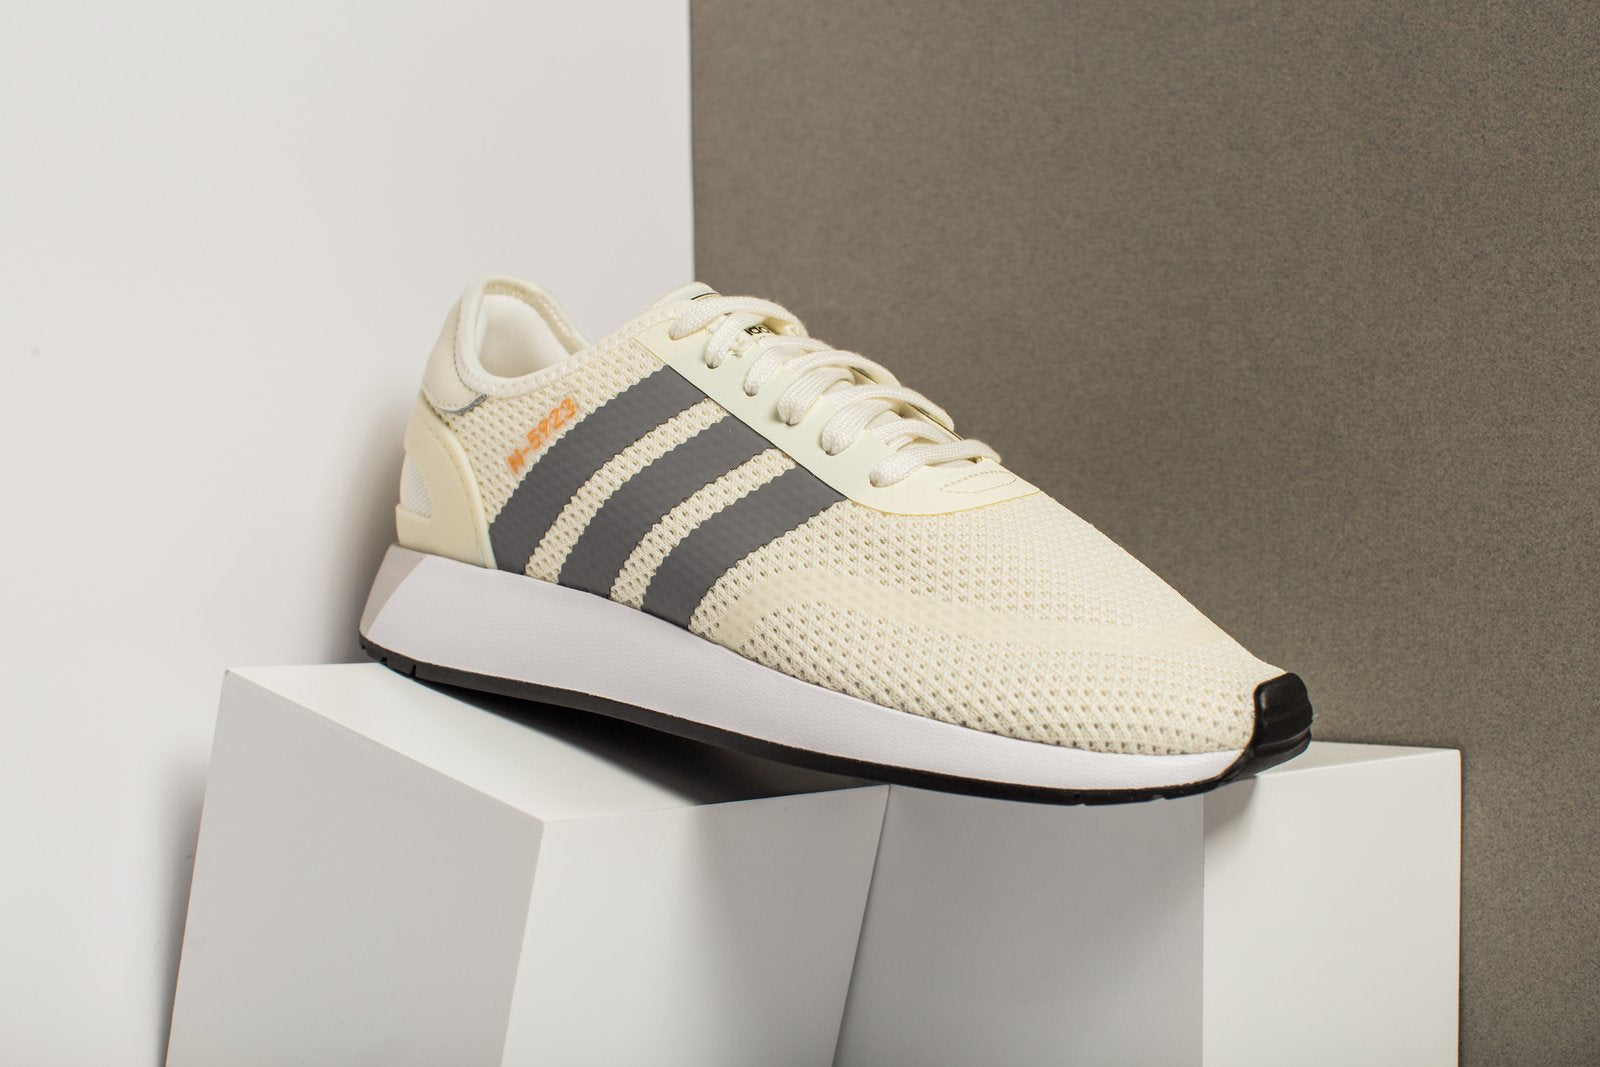 ADIDAS N-5923 - Oneness Boutique